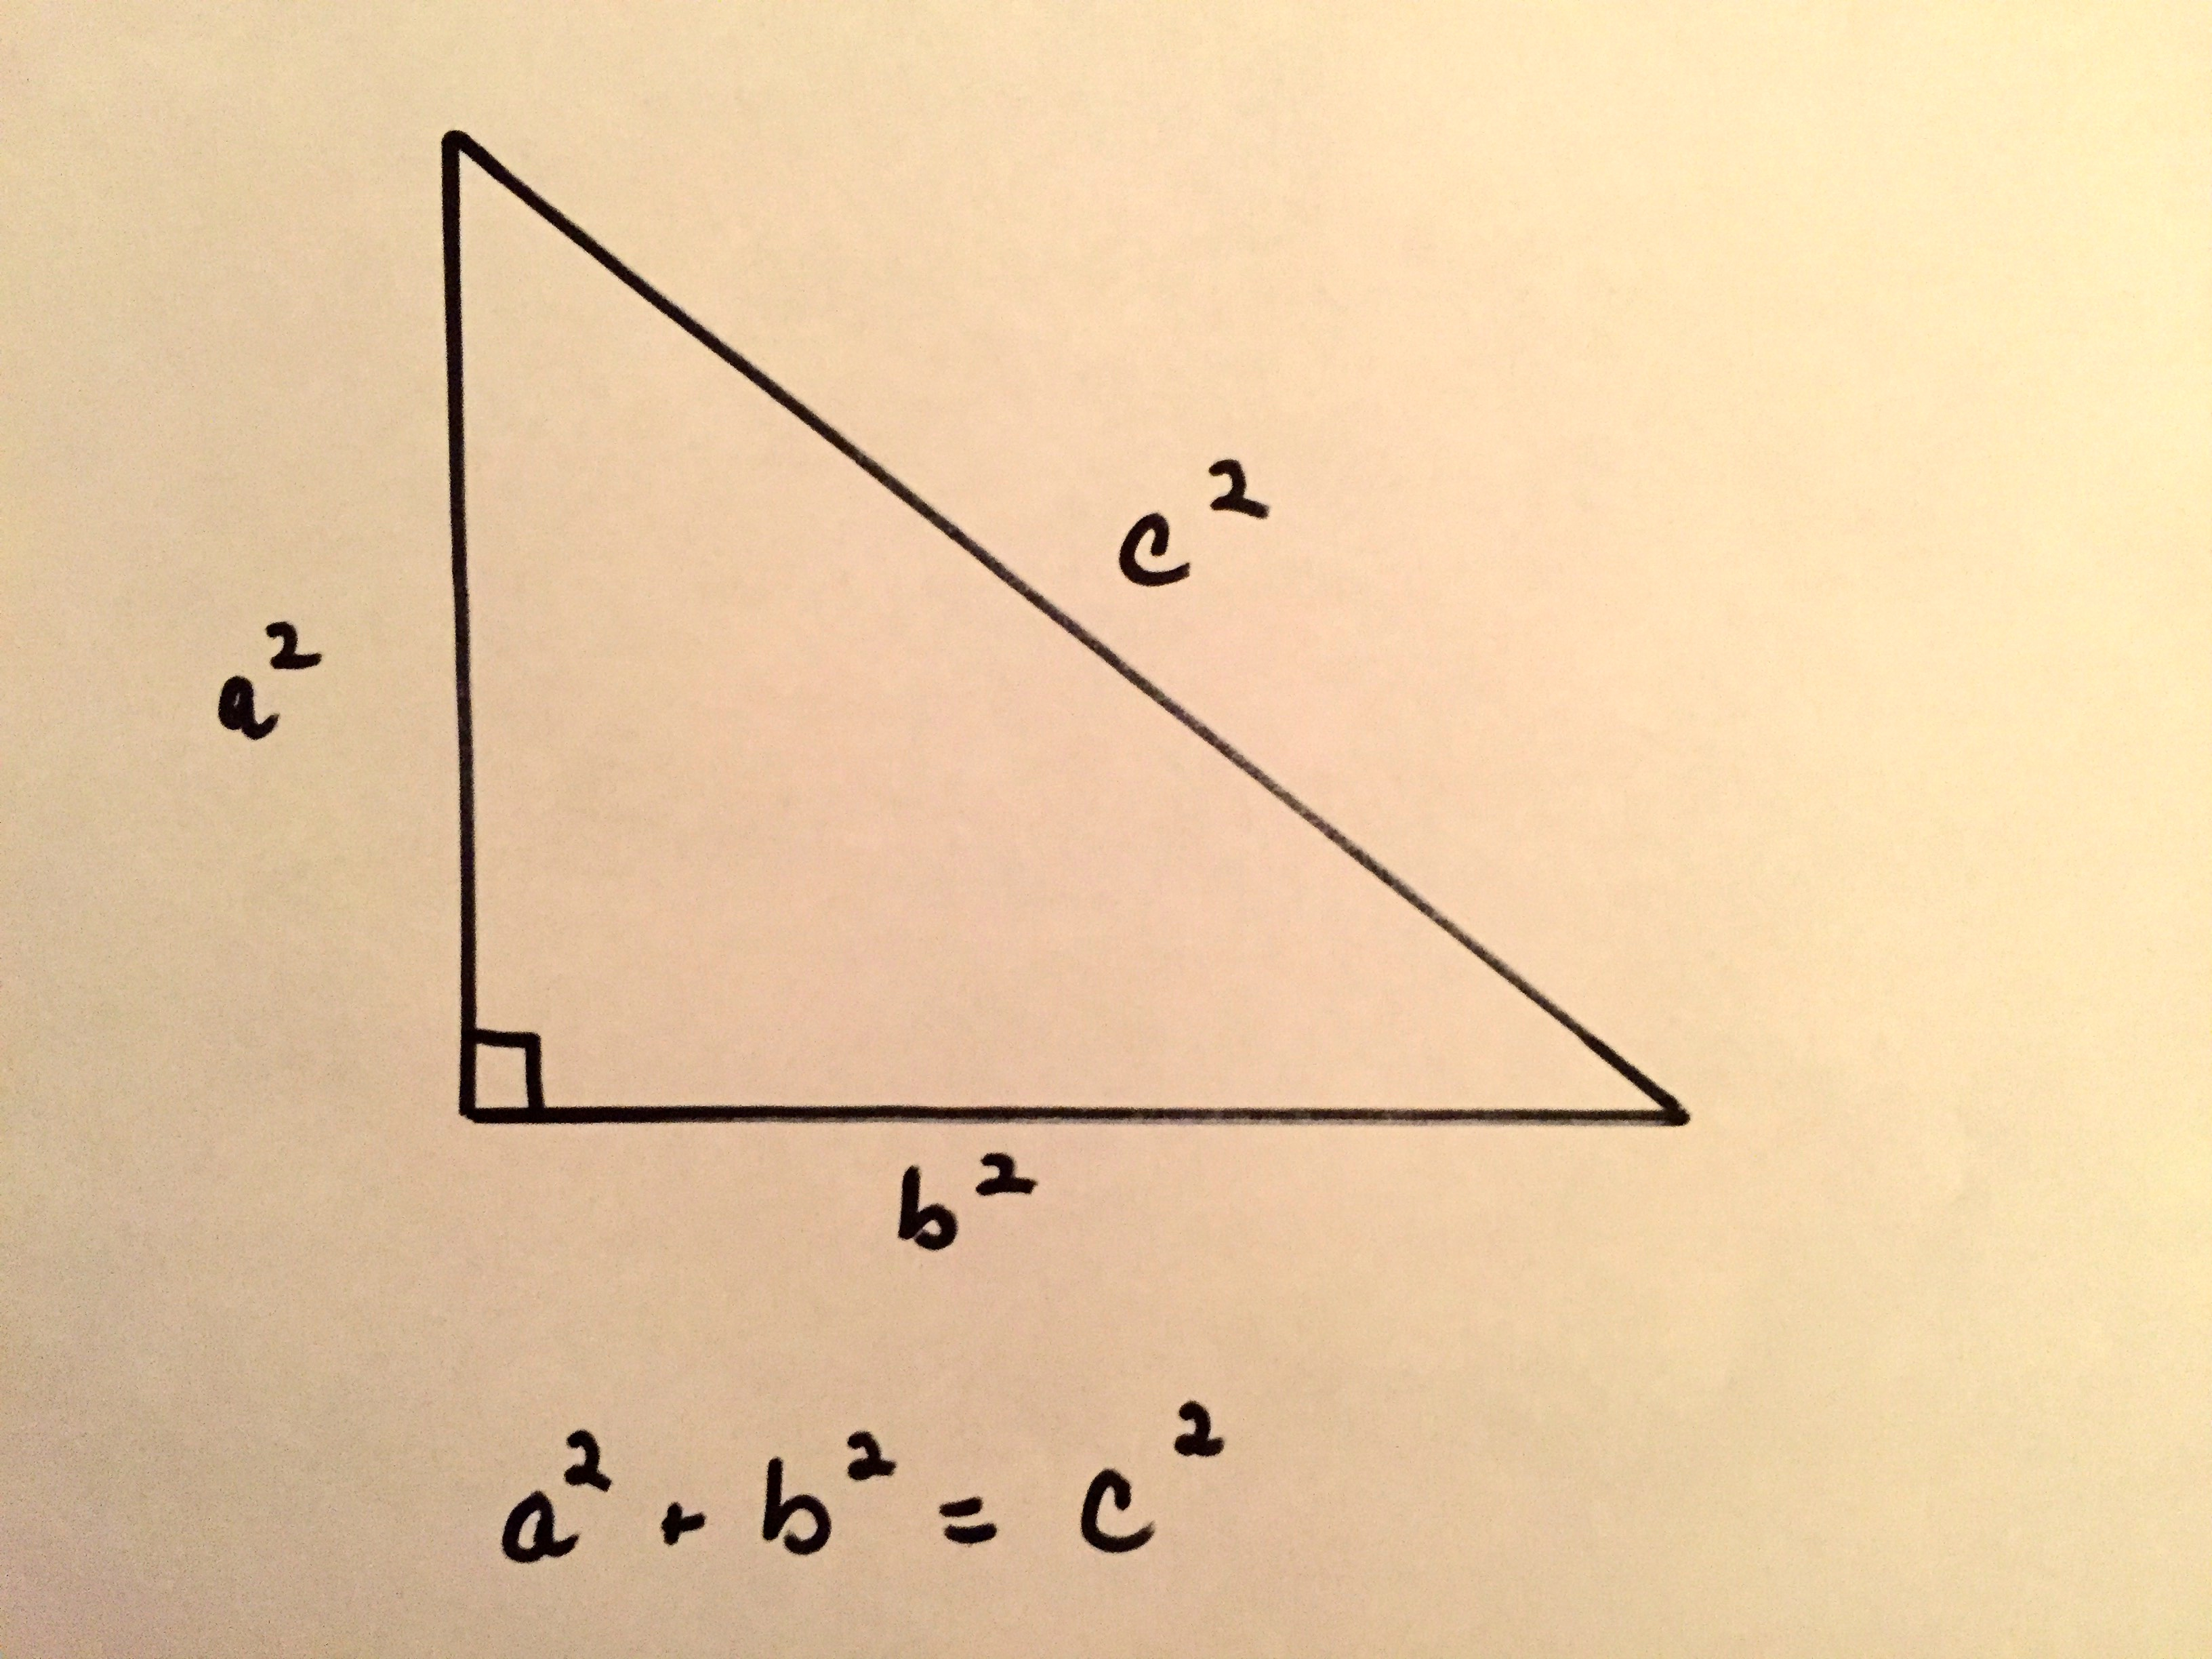 Pythagorean Theorem And Proof